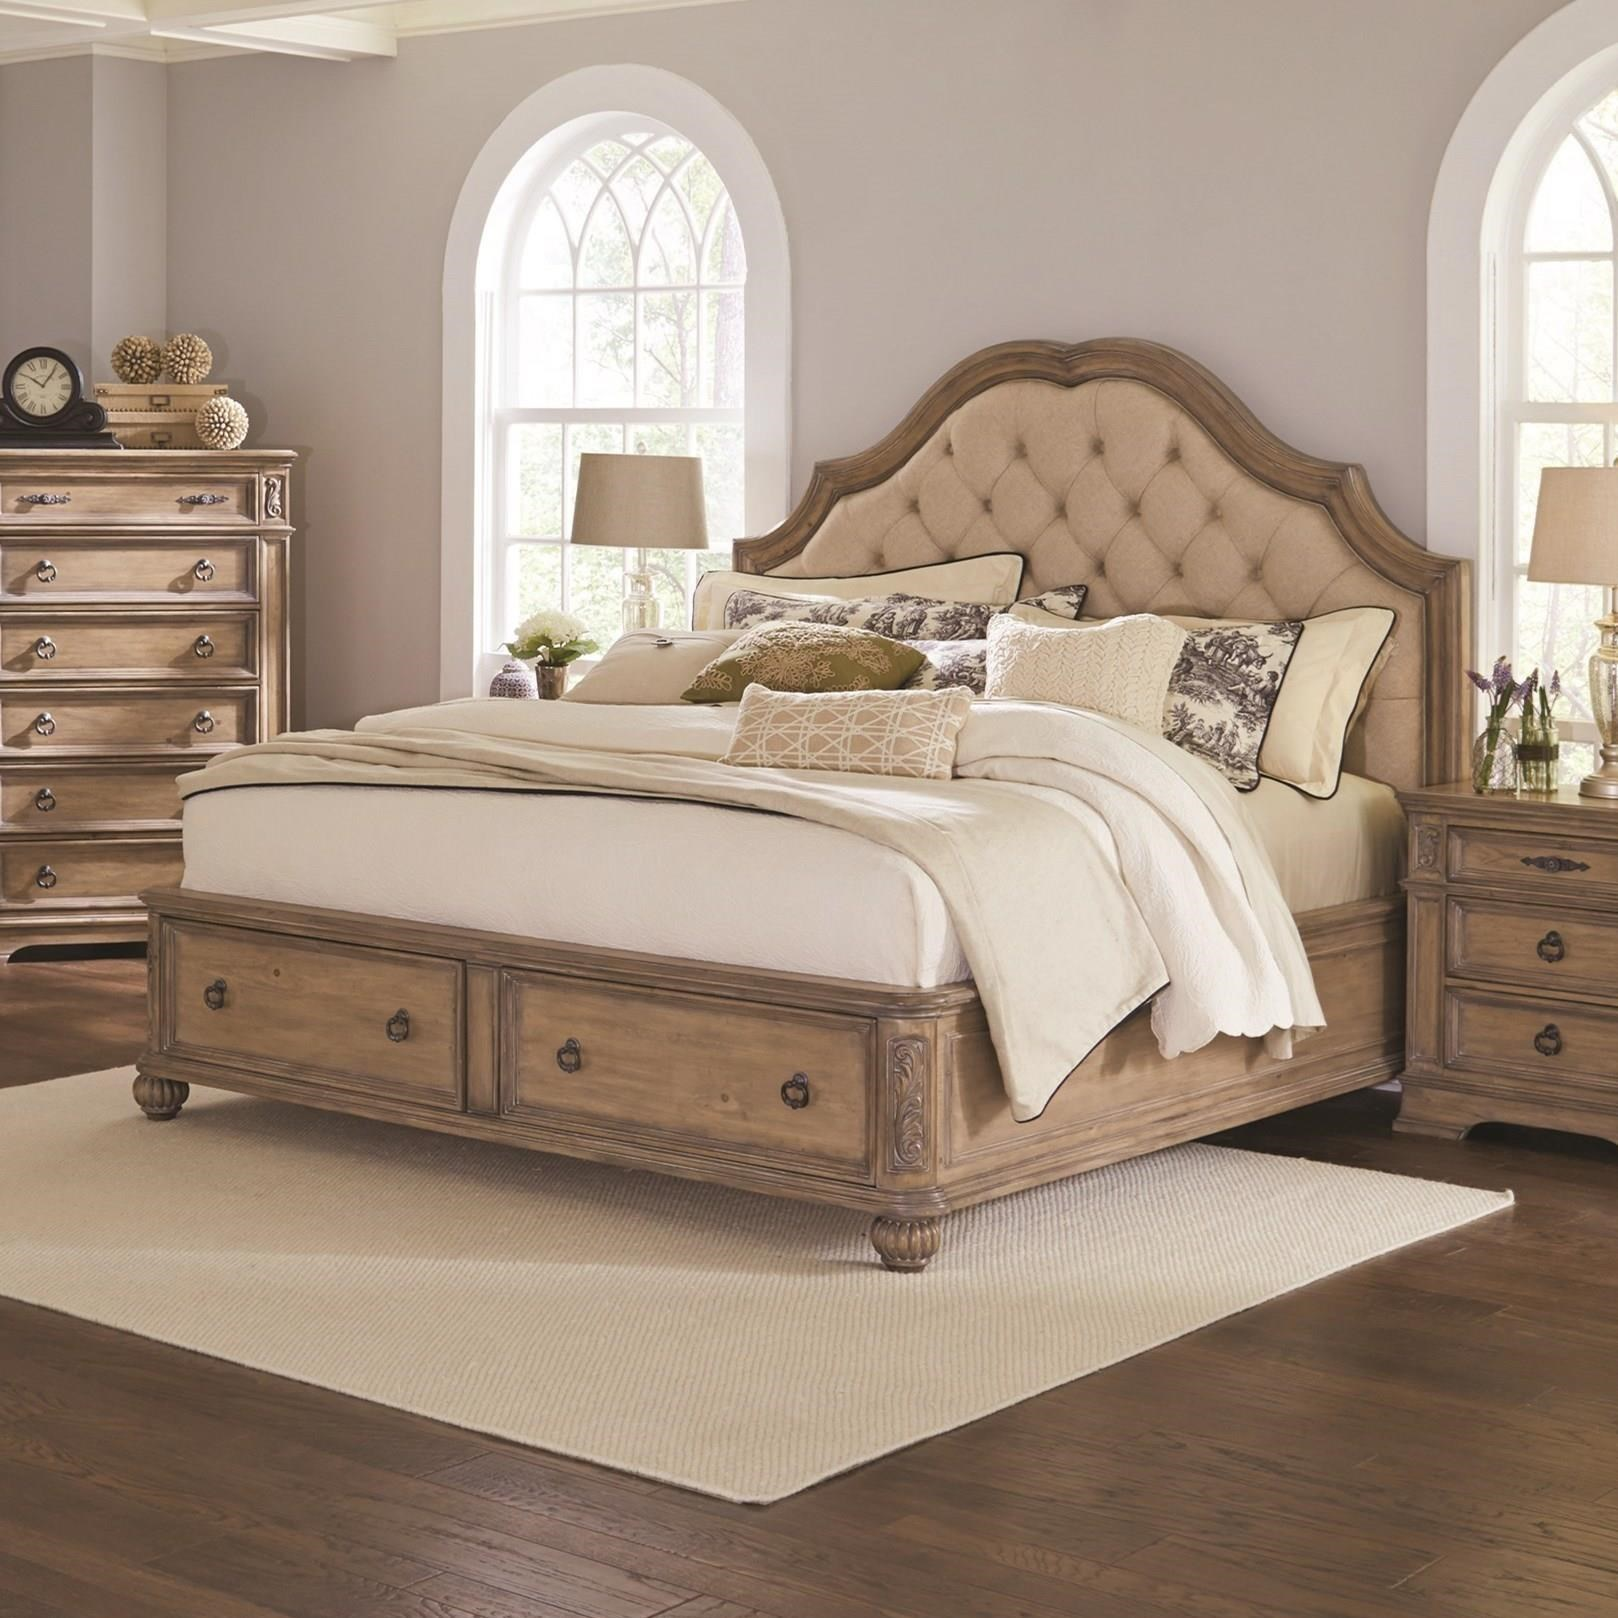 Ilana Collection 205070kw California King Bed With A Deep